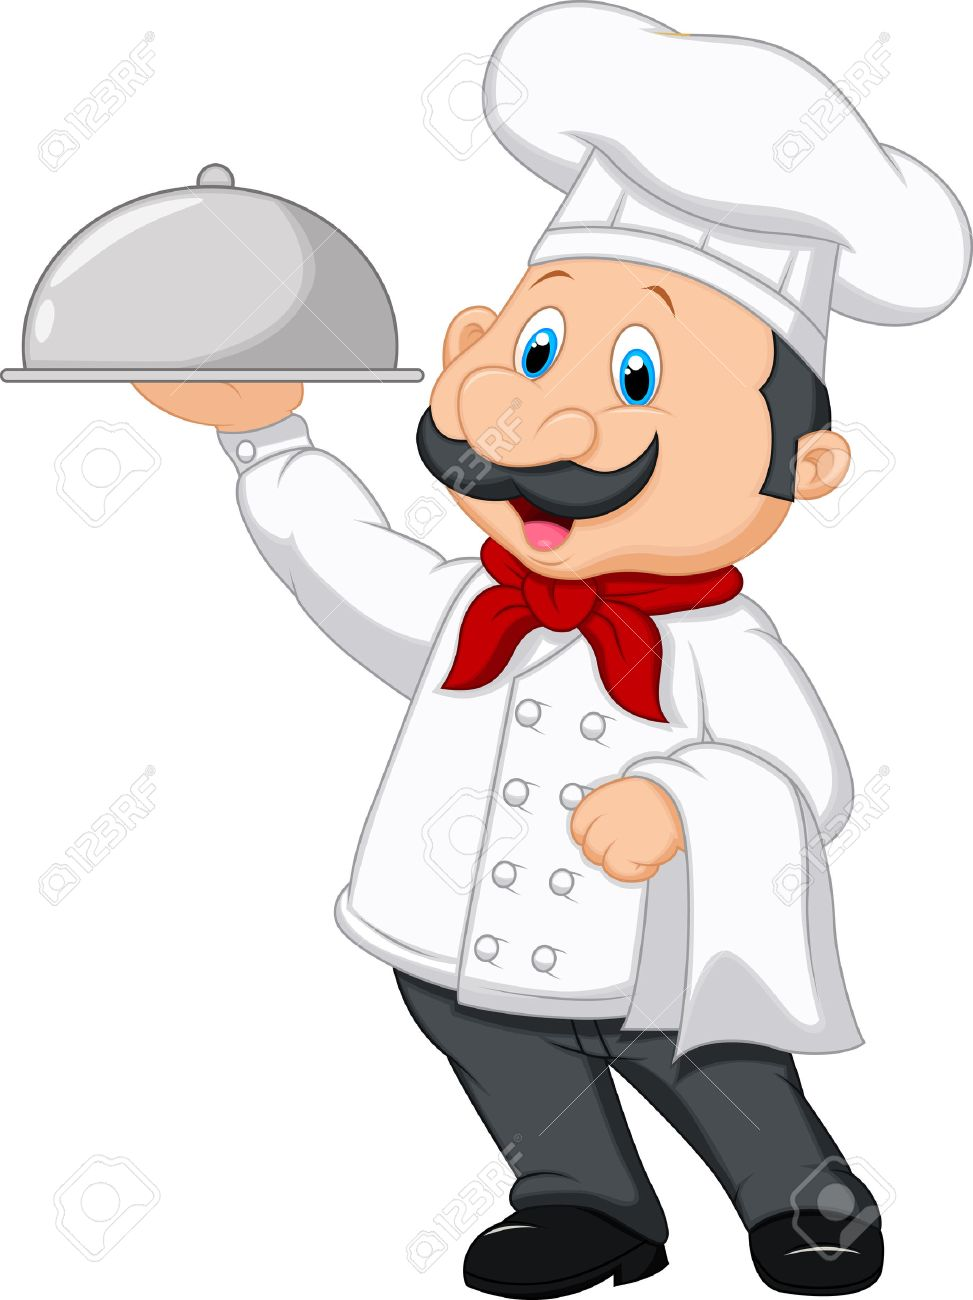 chef cartoon holding platter royalty free cliparts vectors and rh 123rf com chef cartoon pictures chef cartoon maker